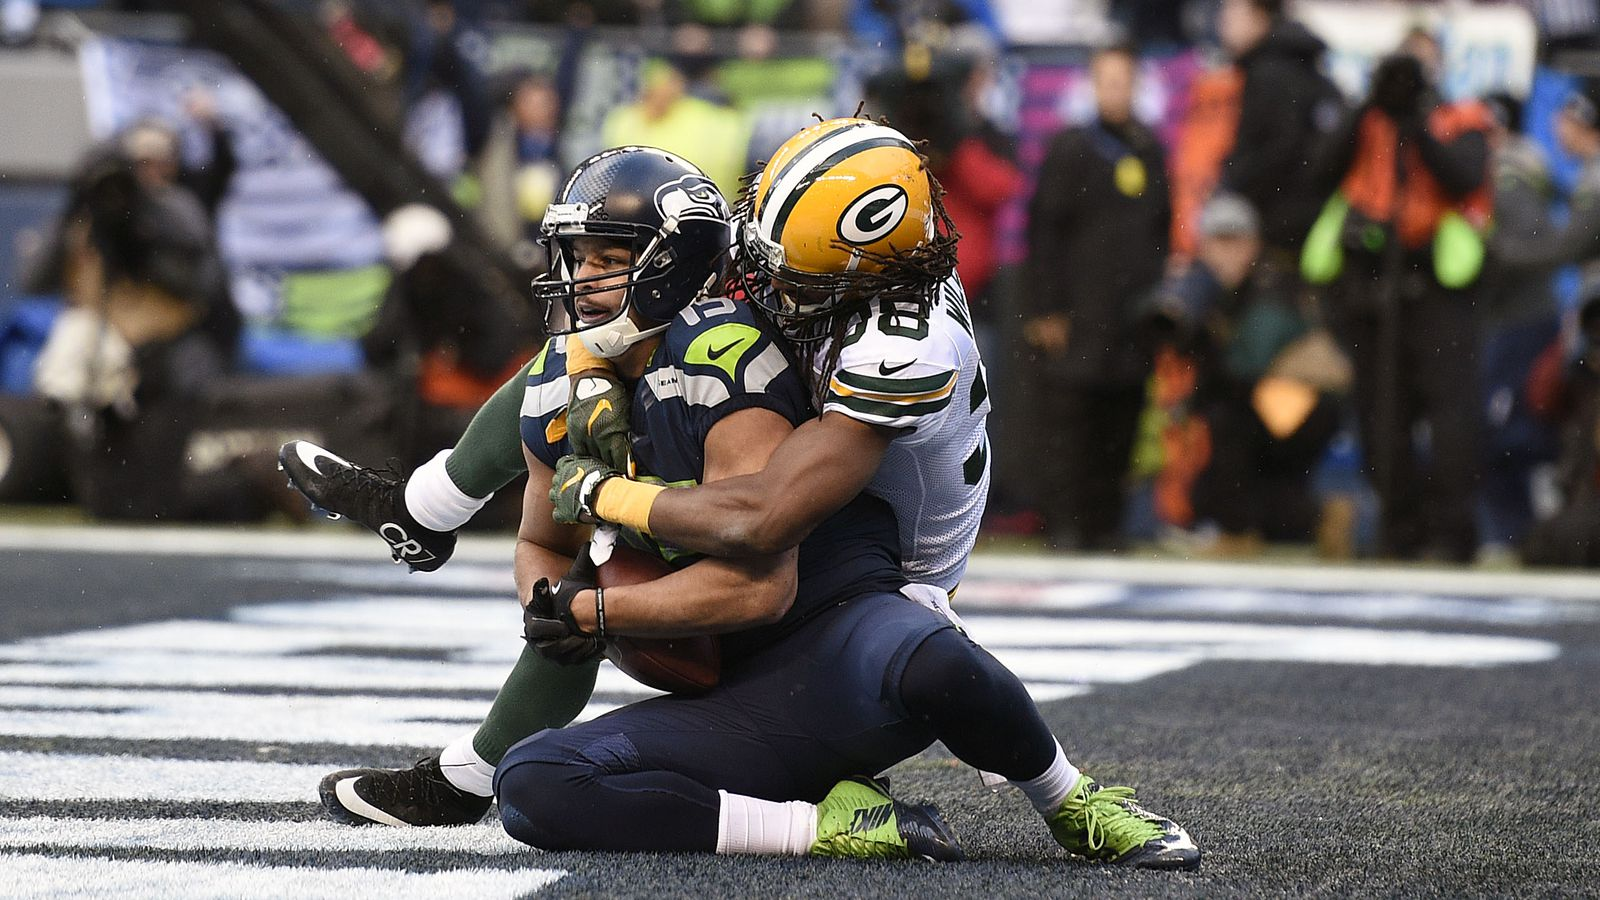 Packers vs. Seahawks, NFC Championship: Gameday News and